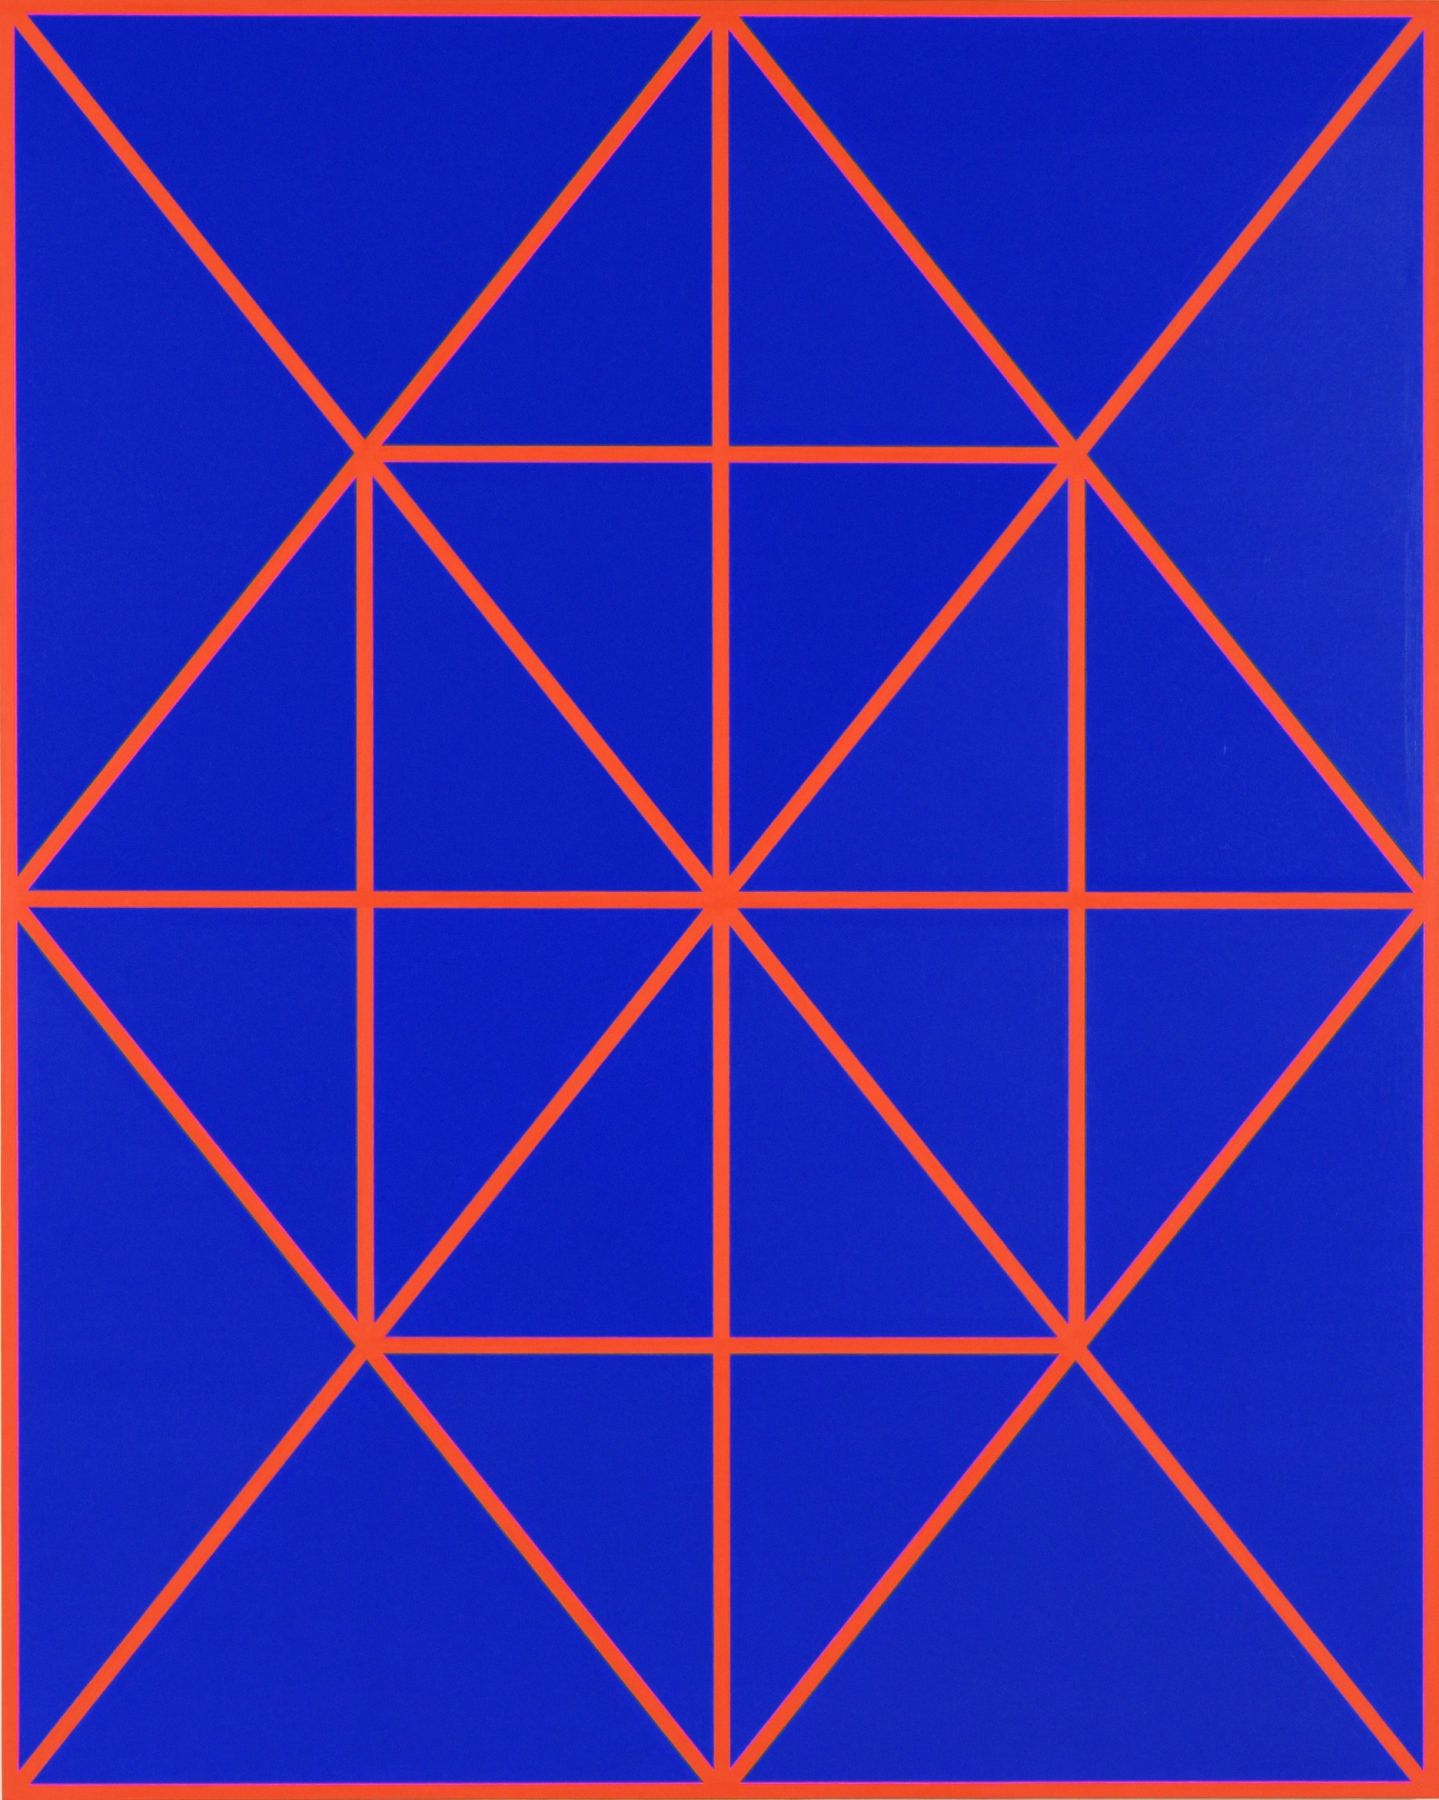 Cary Smith, Complex Diagonals #8 (blue-red), 2017